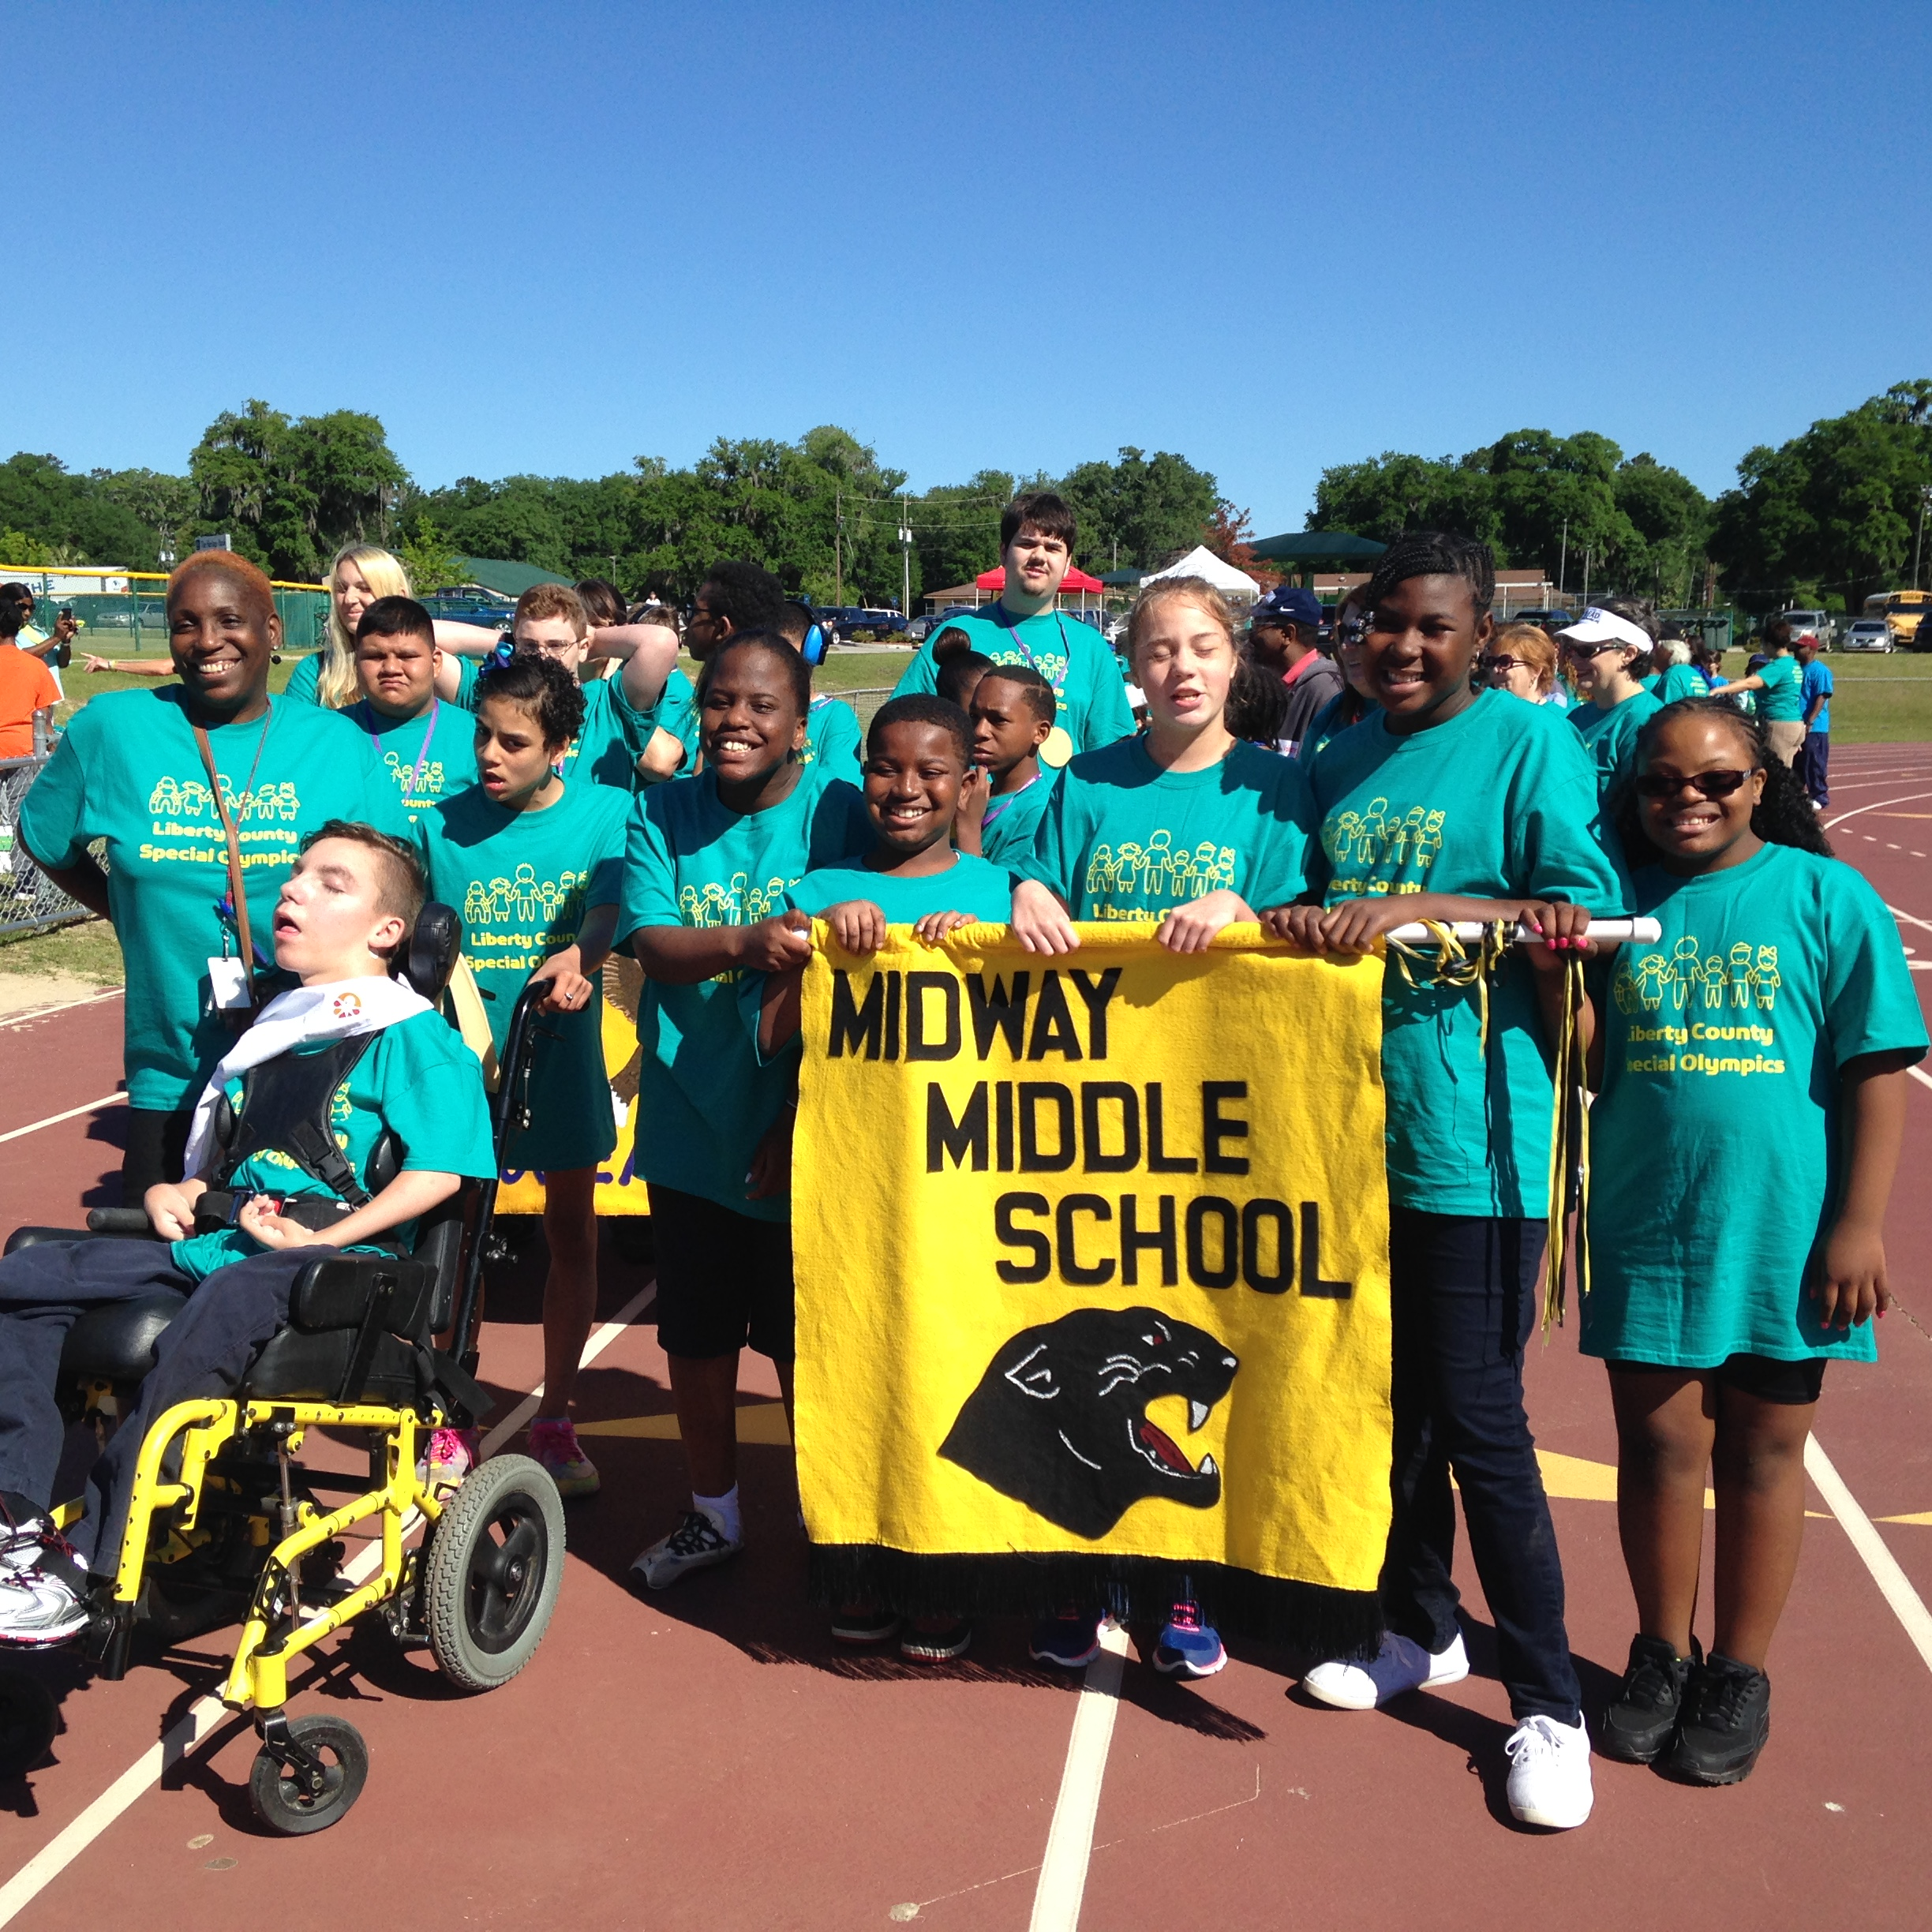 School shirt design your own - Midway Middle School Athletes T Shirt Photo